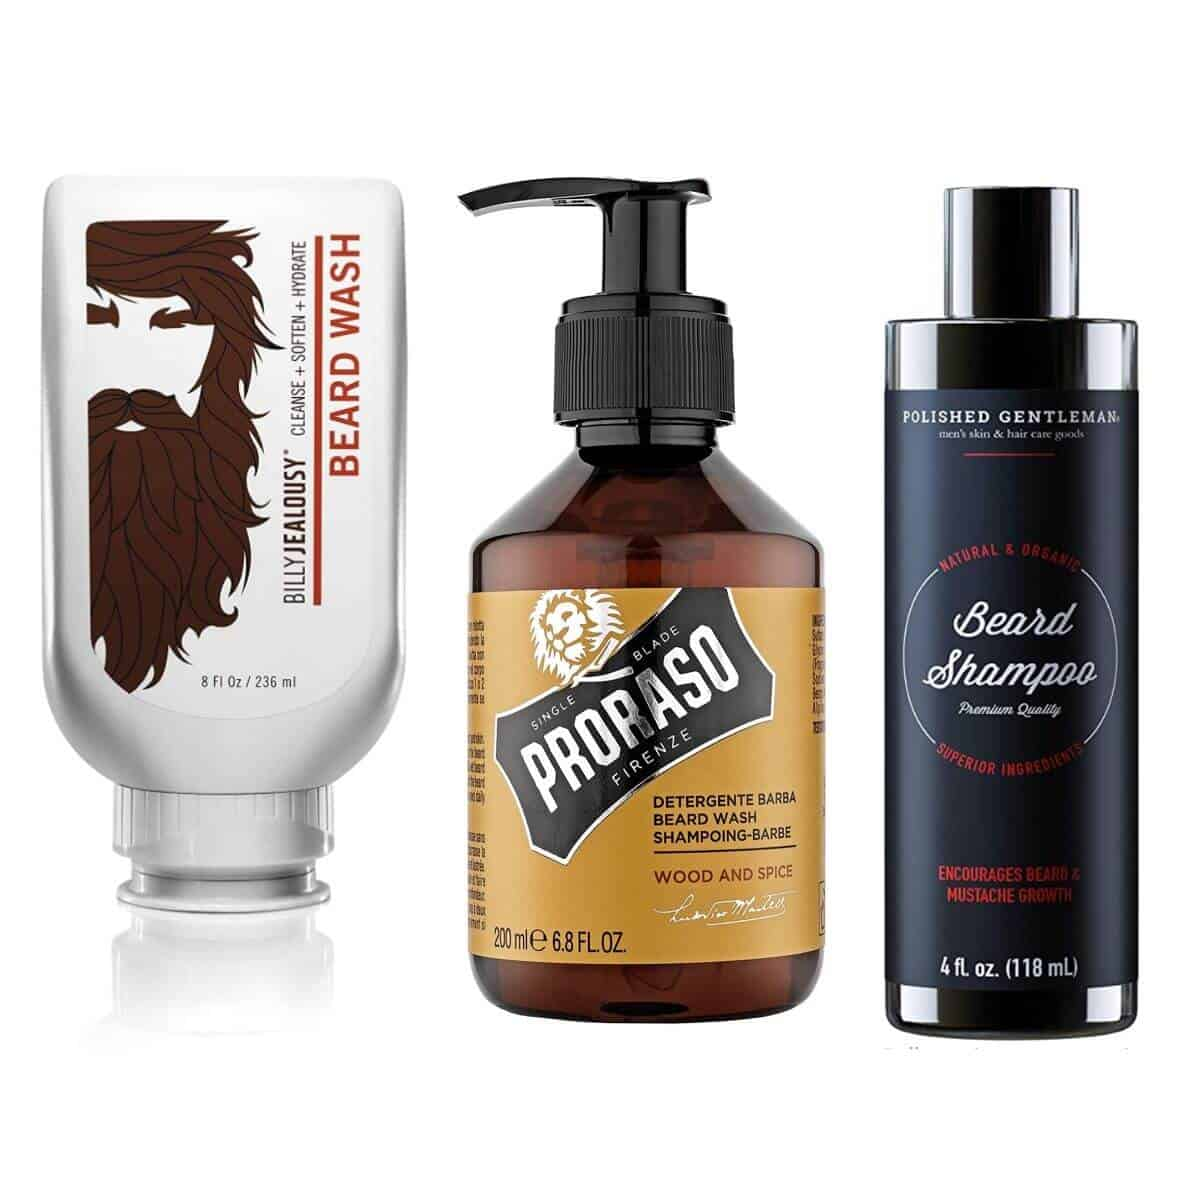 Three bottles of beard shampoo.